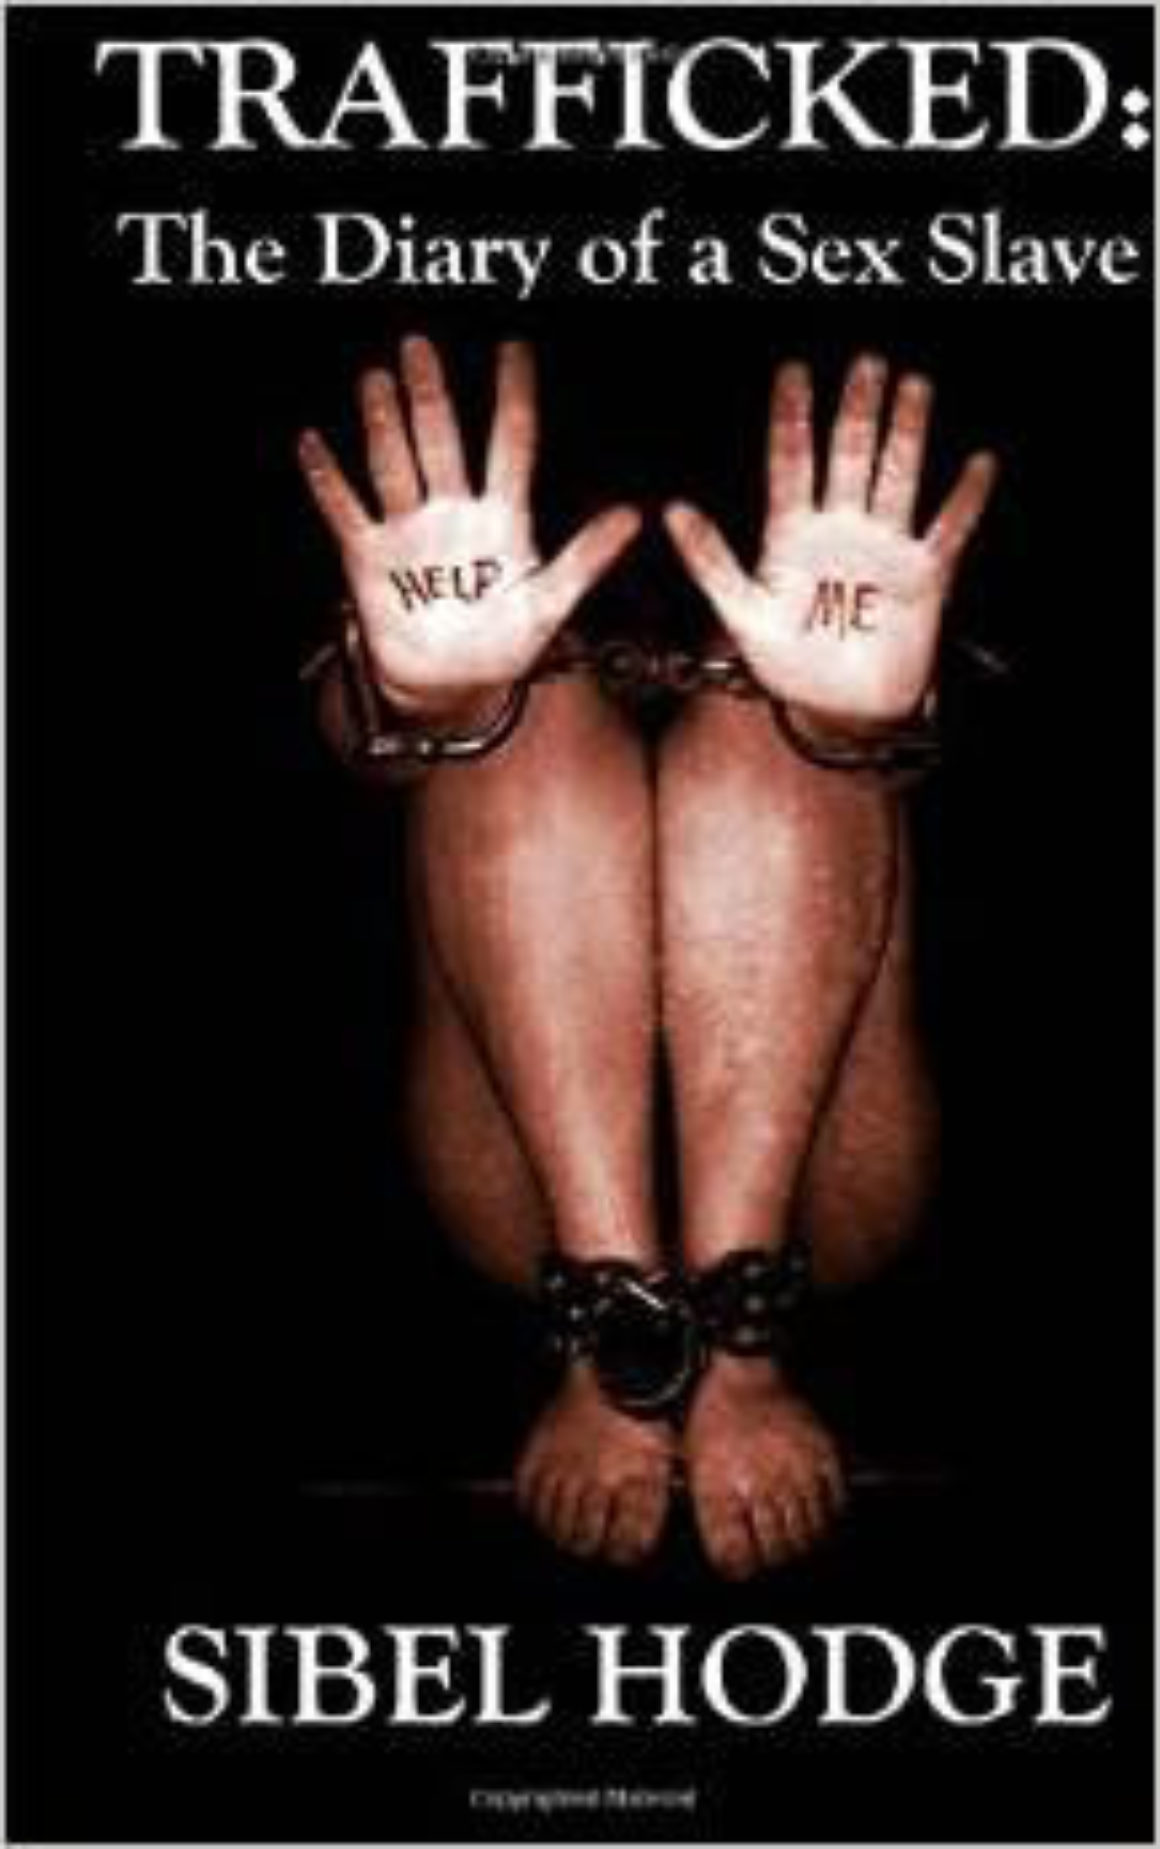 book-cover-trafficked-the-diary-of-a-sex-slave